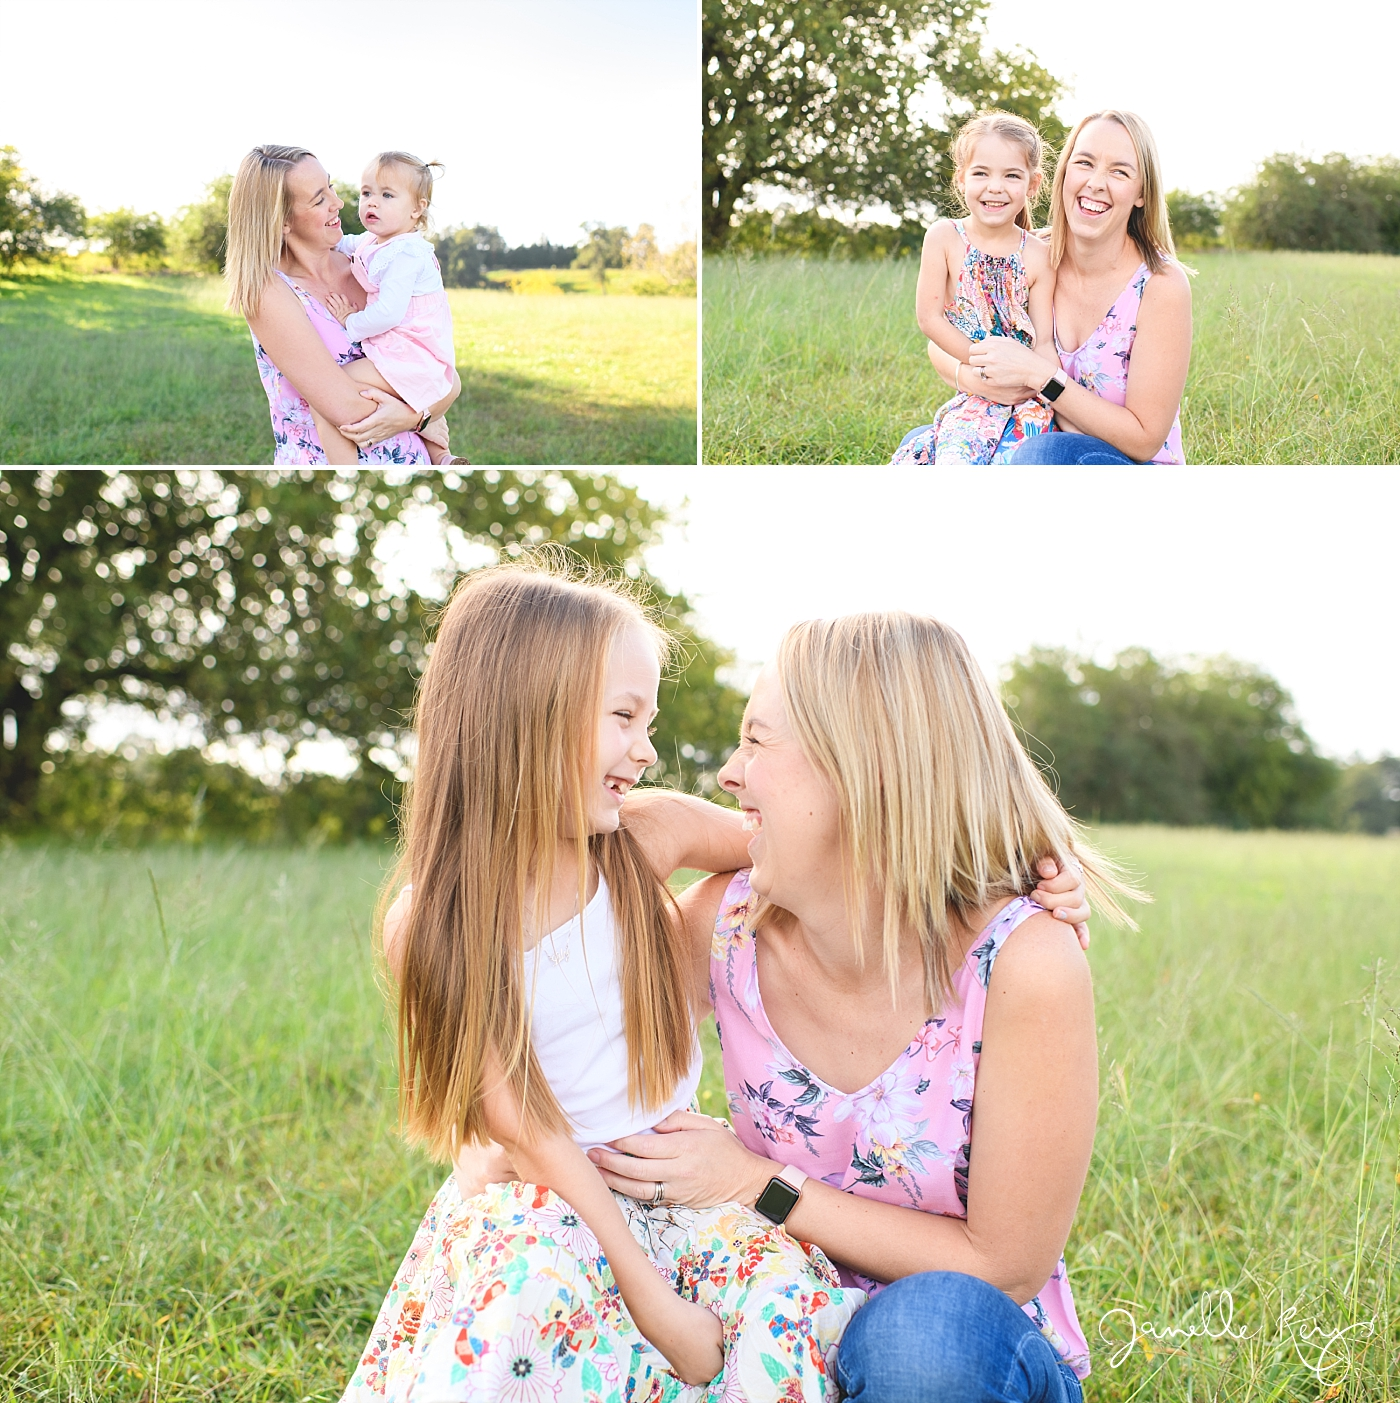 mothers-day-photos-5.jpg